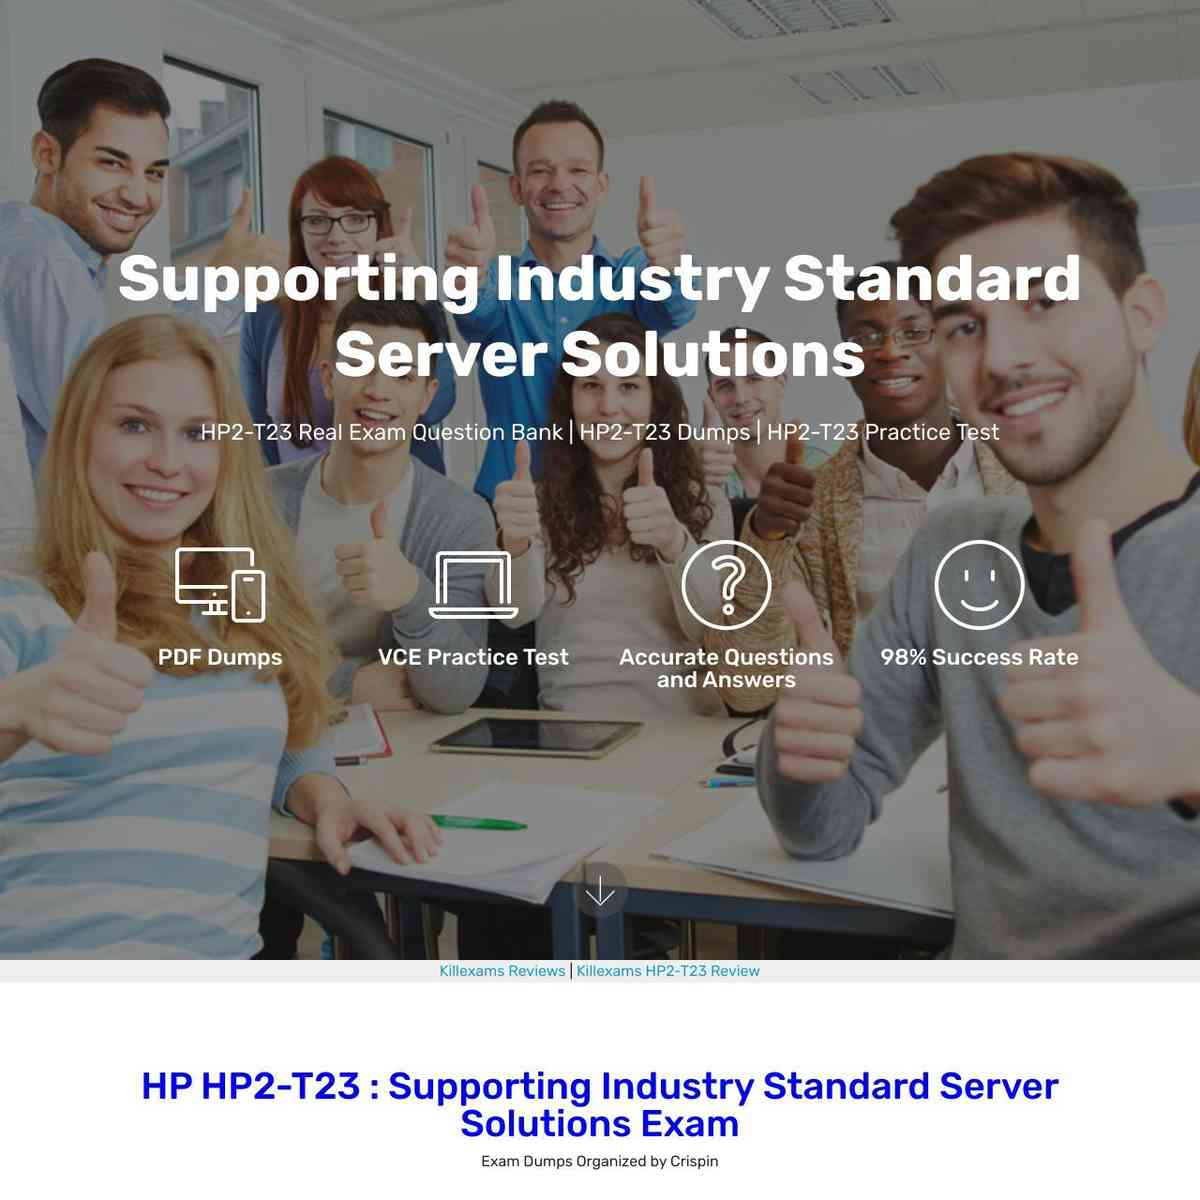 Just download and read these HP2-T23 Free Exam PDF before you go for real test